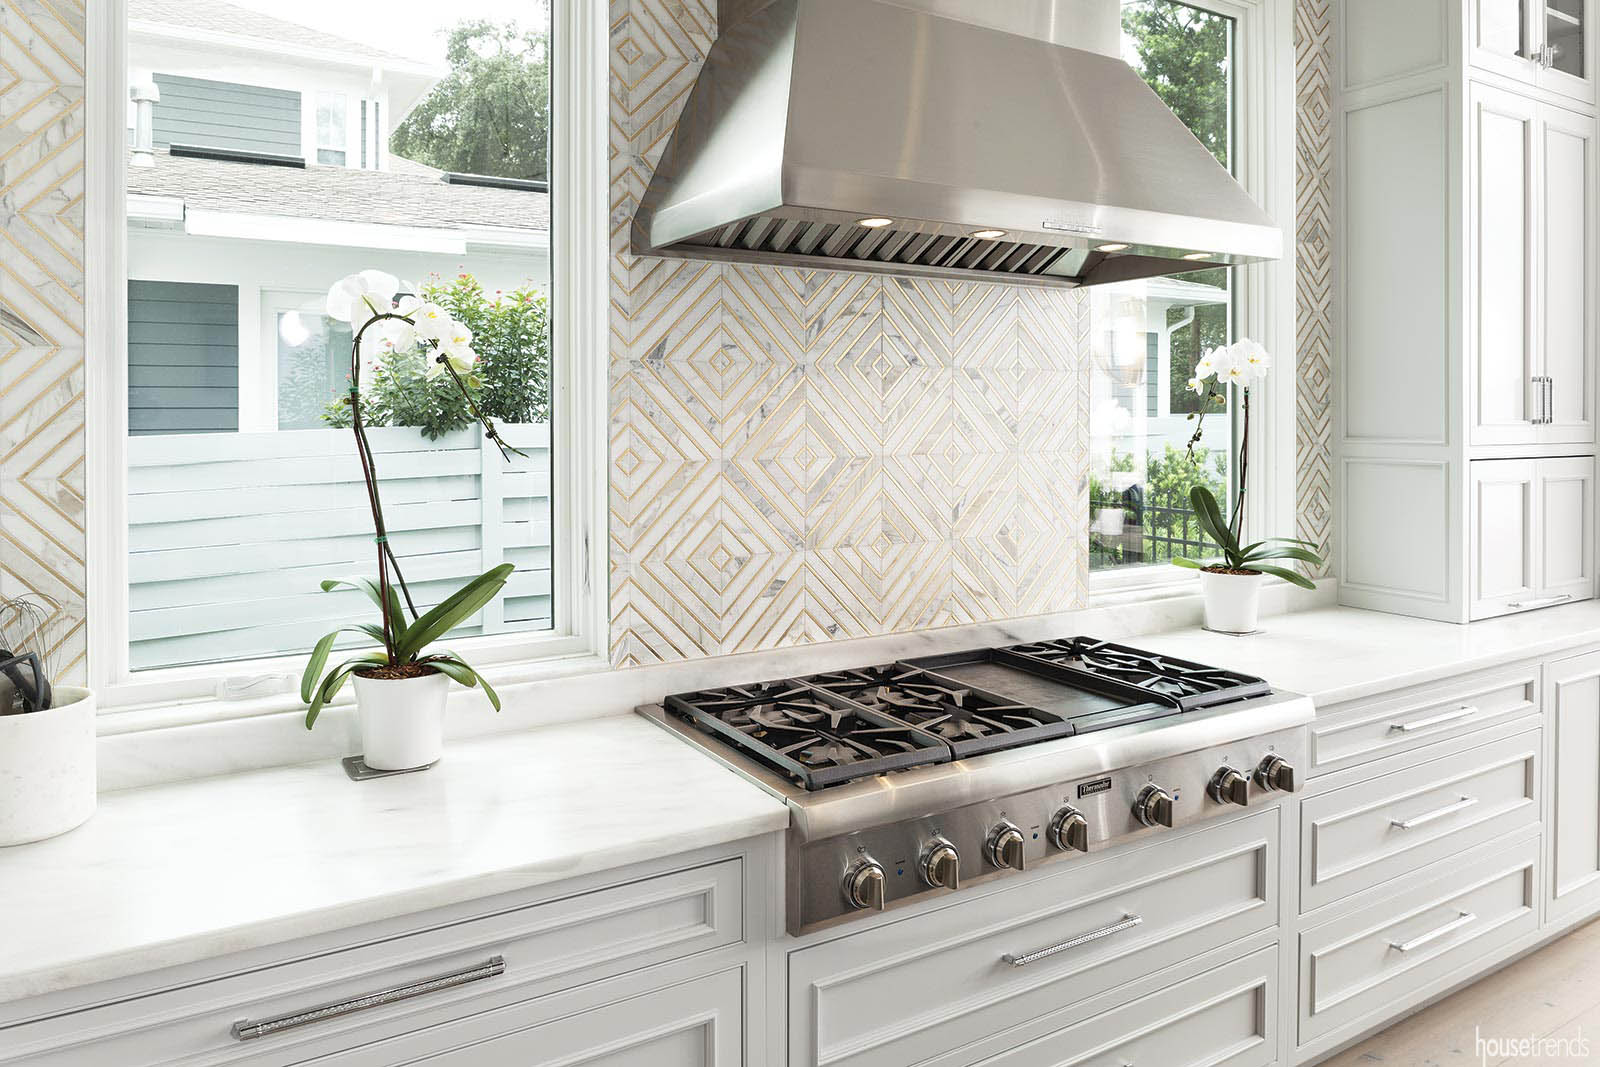 Backsplash stretches to the ceiling